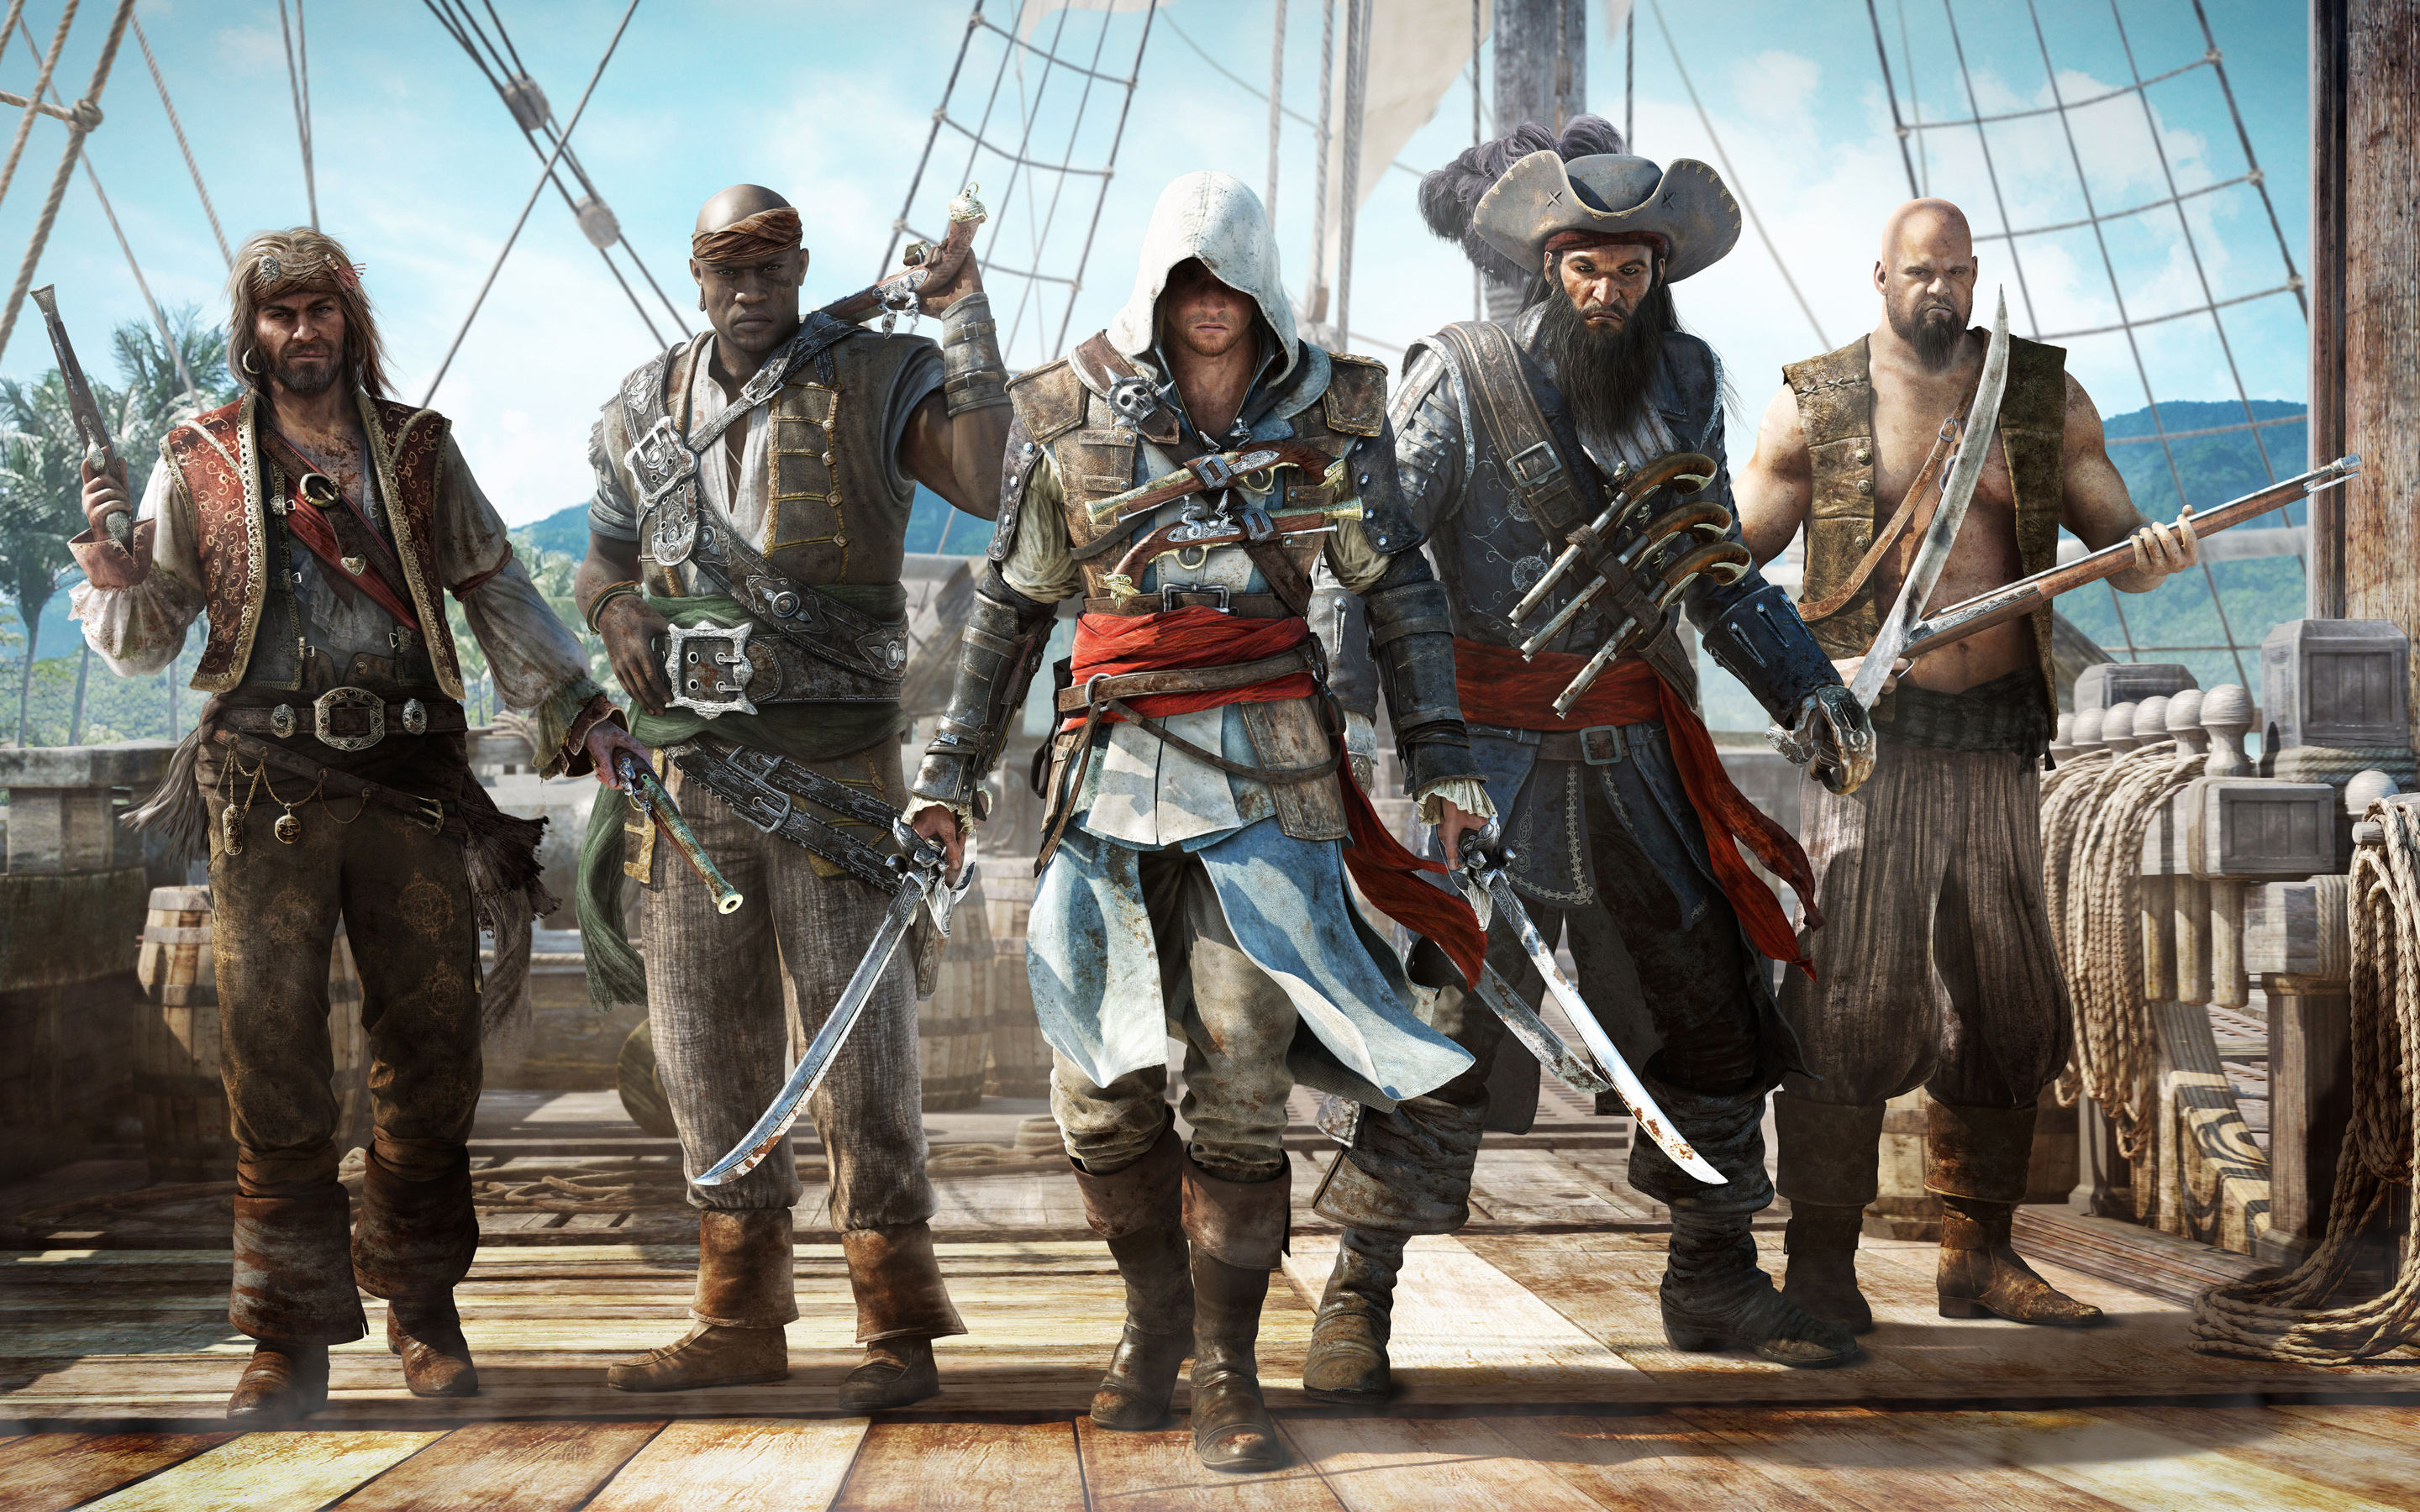 Assassins Creed IV: Black Flag Wallpaper